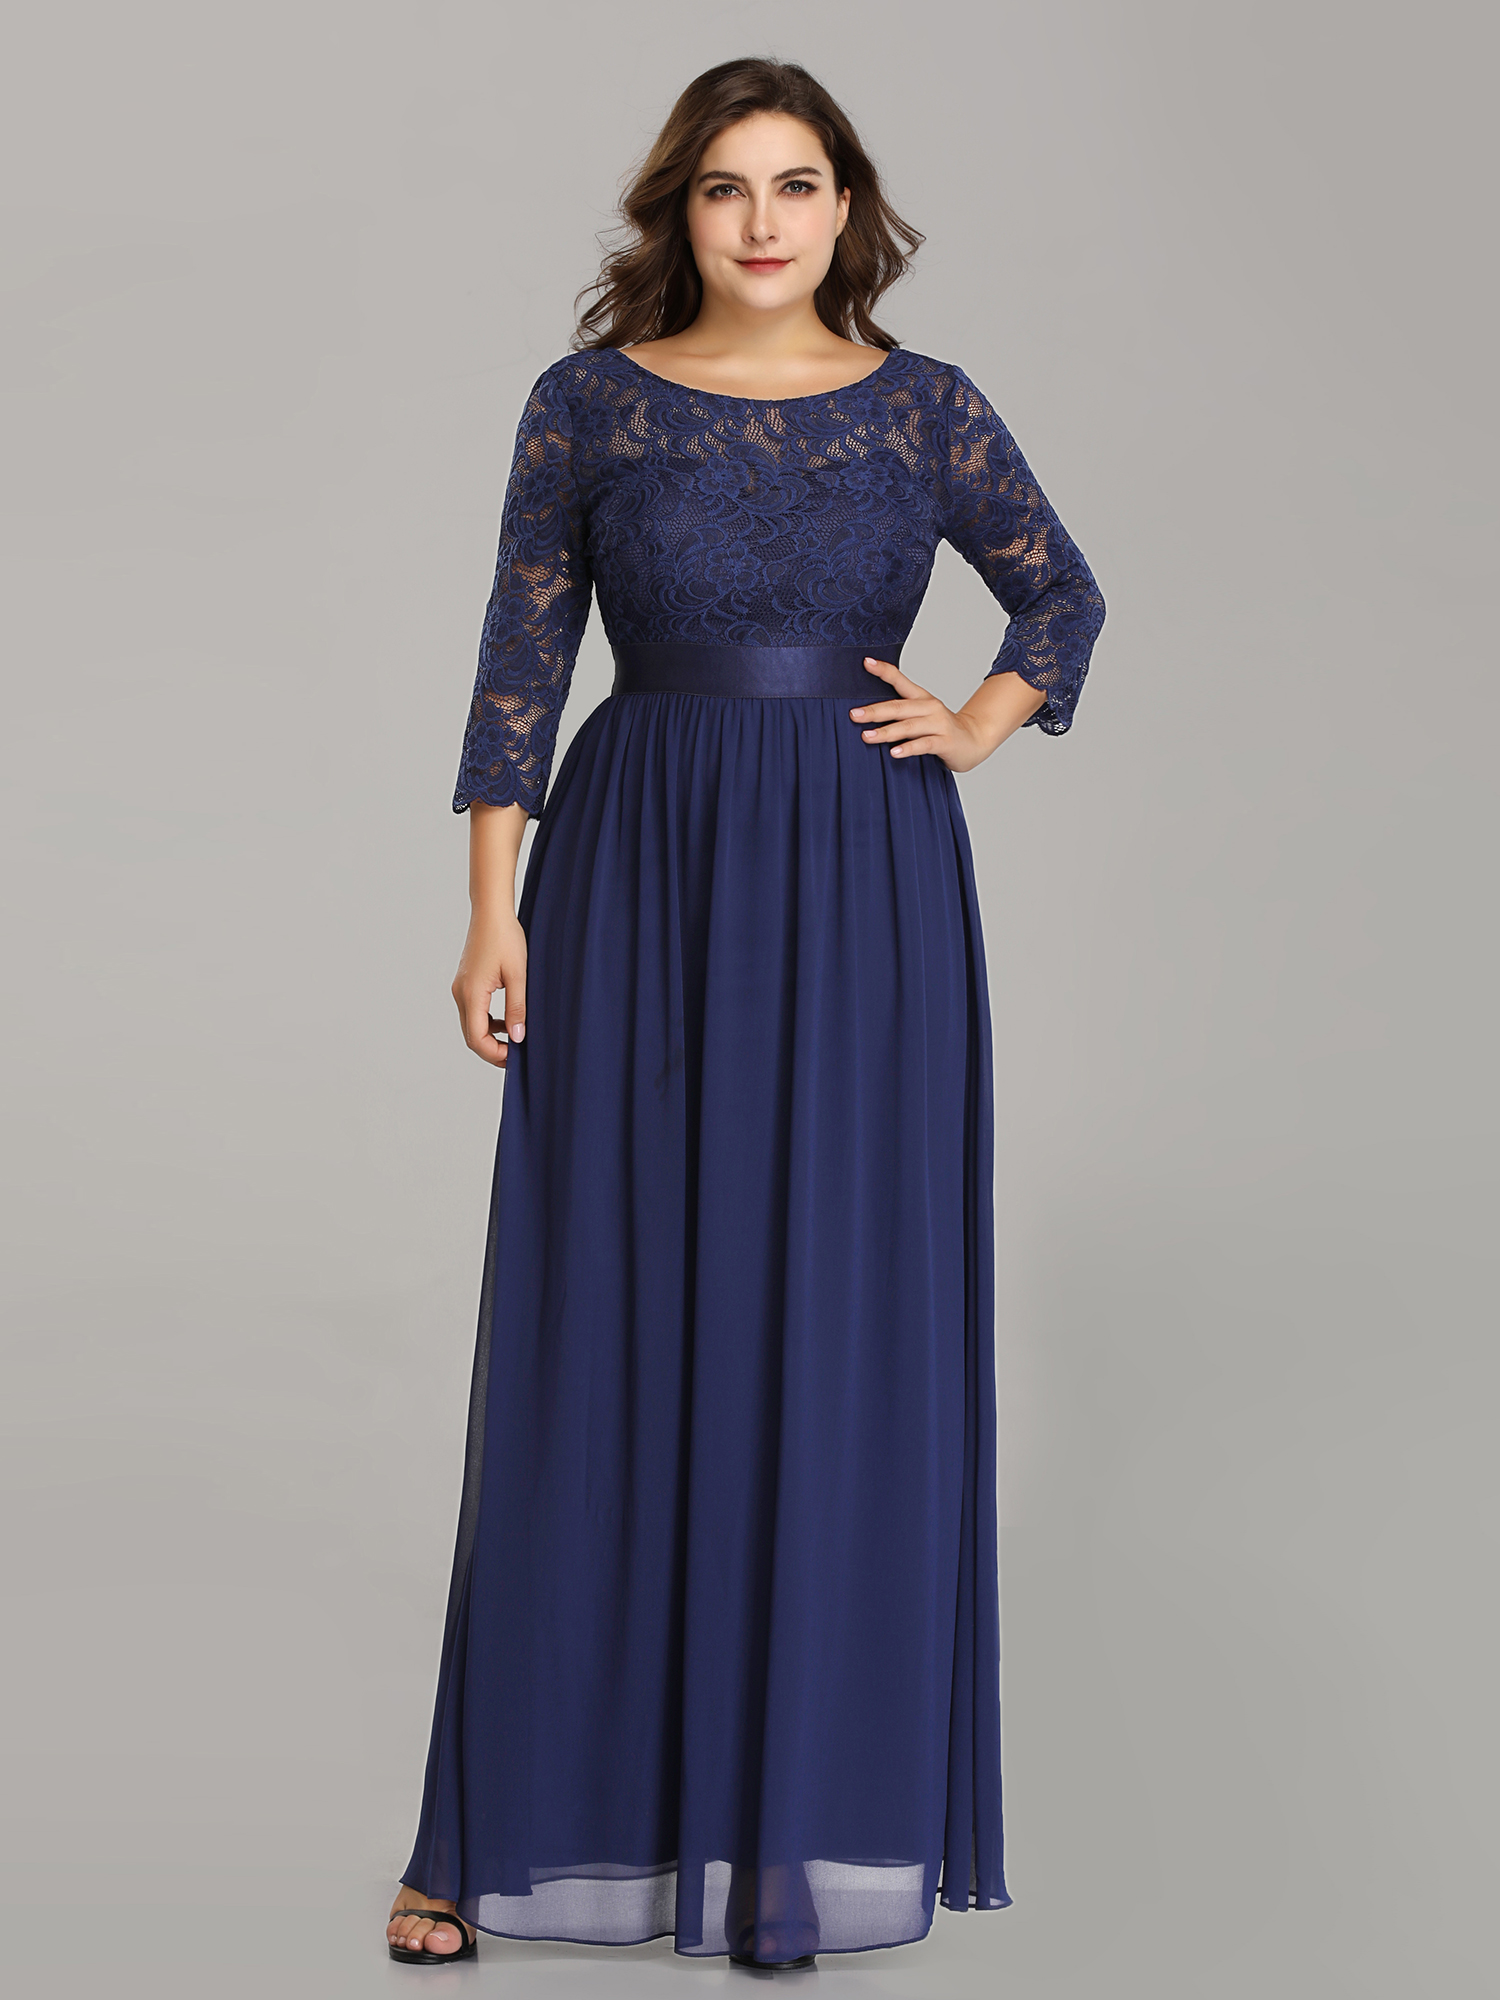 dcb3e494a02 Ever-Pretty US Plus Size Mother of Bride Dresses Navy Blue Evening ...